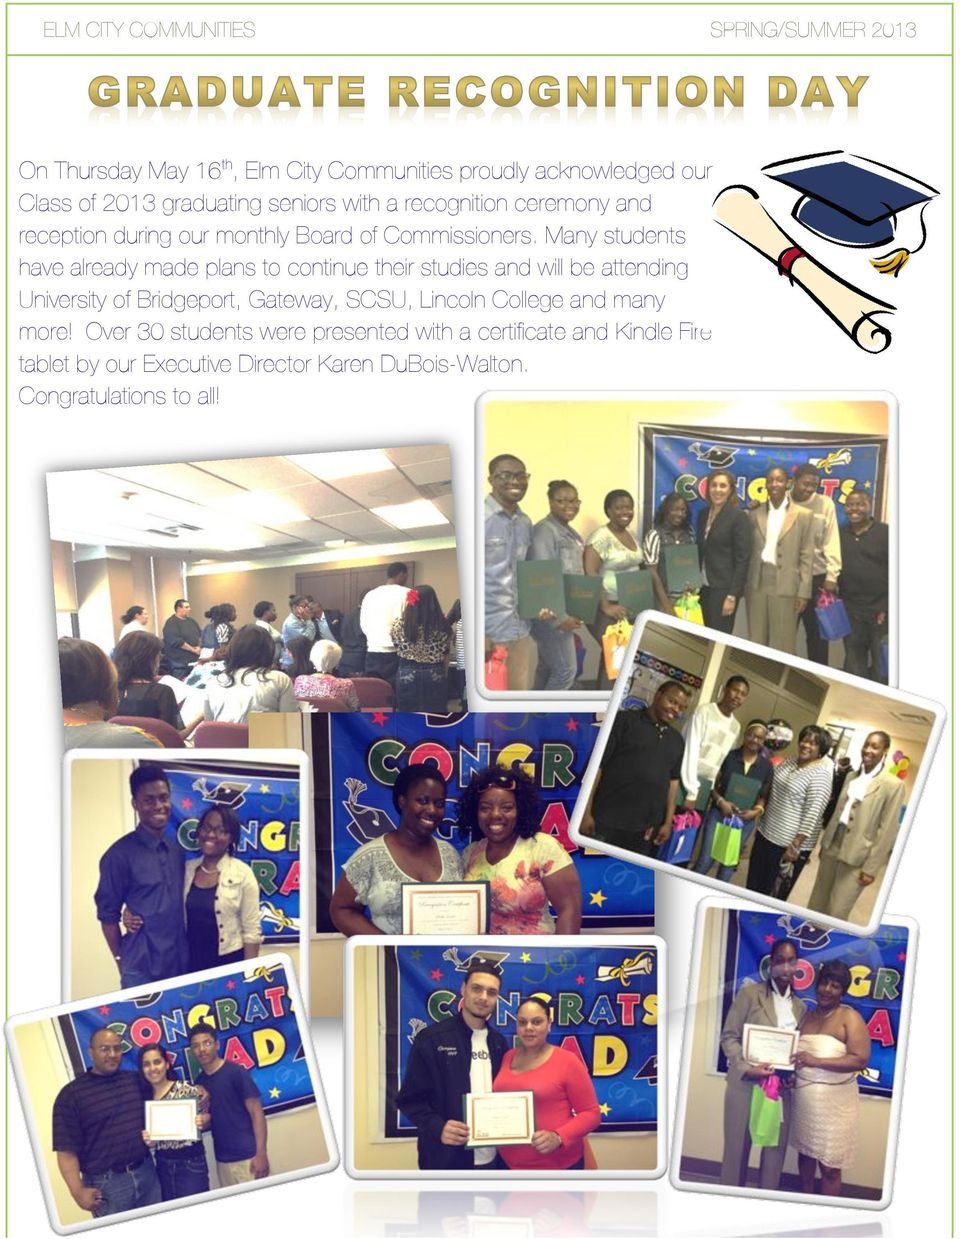 Many students have already made plans to continue their studies and will be attending University of Bridgeport, Gateway, SCSU,